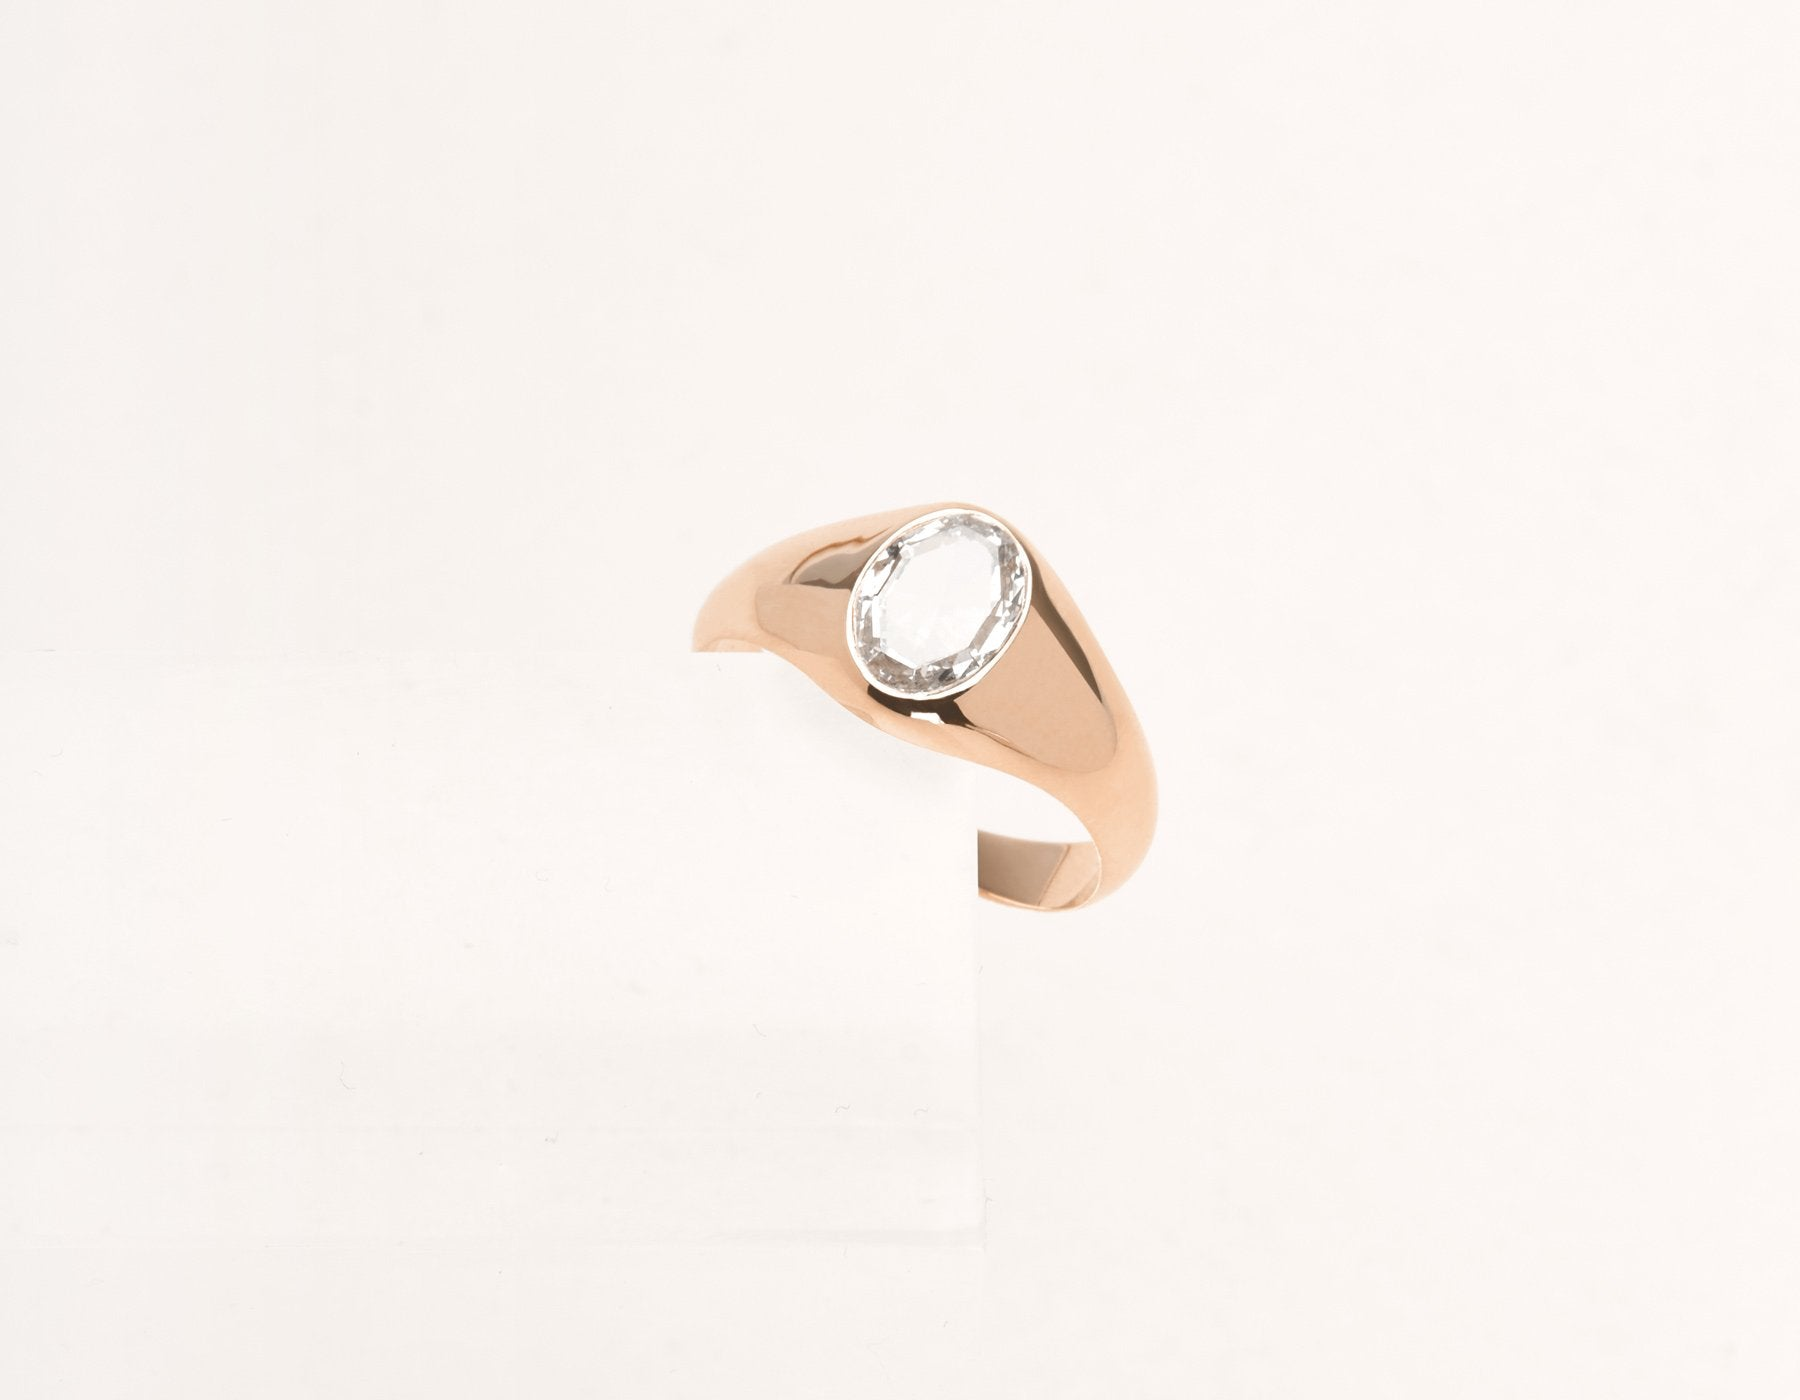 Contemporary classic Oval Rose Signet 18k solid gold diamond ring Vrai & Oro Modern Minimalist Jewelry, 18K Rose Gold